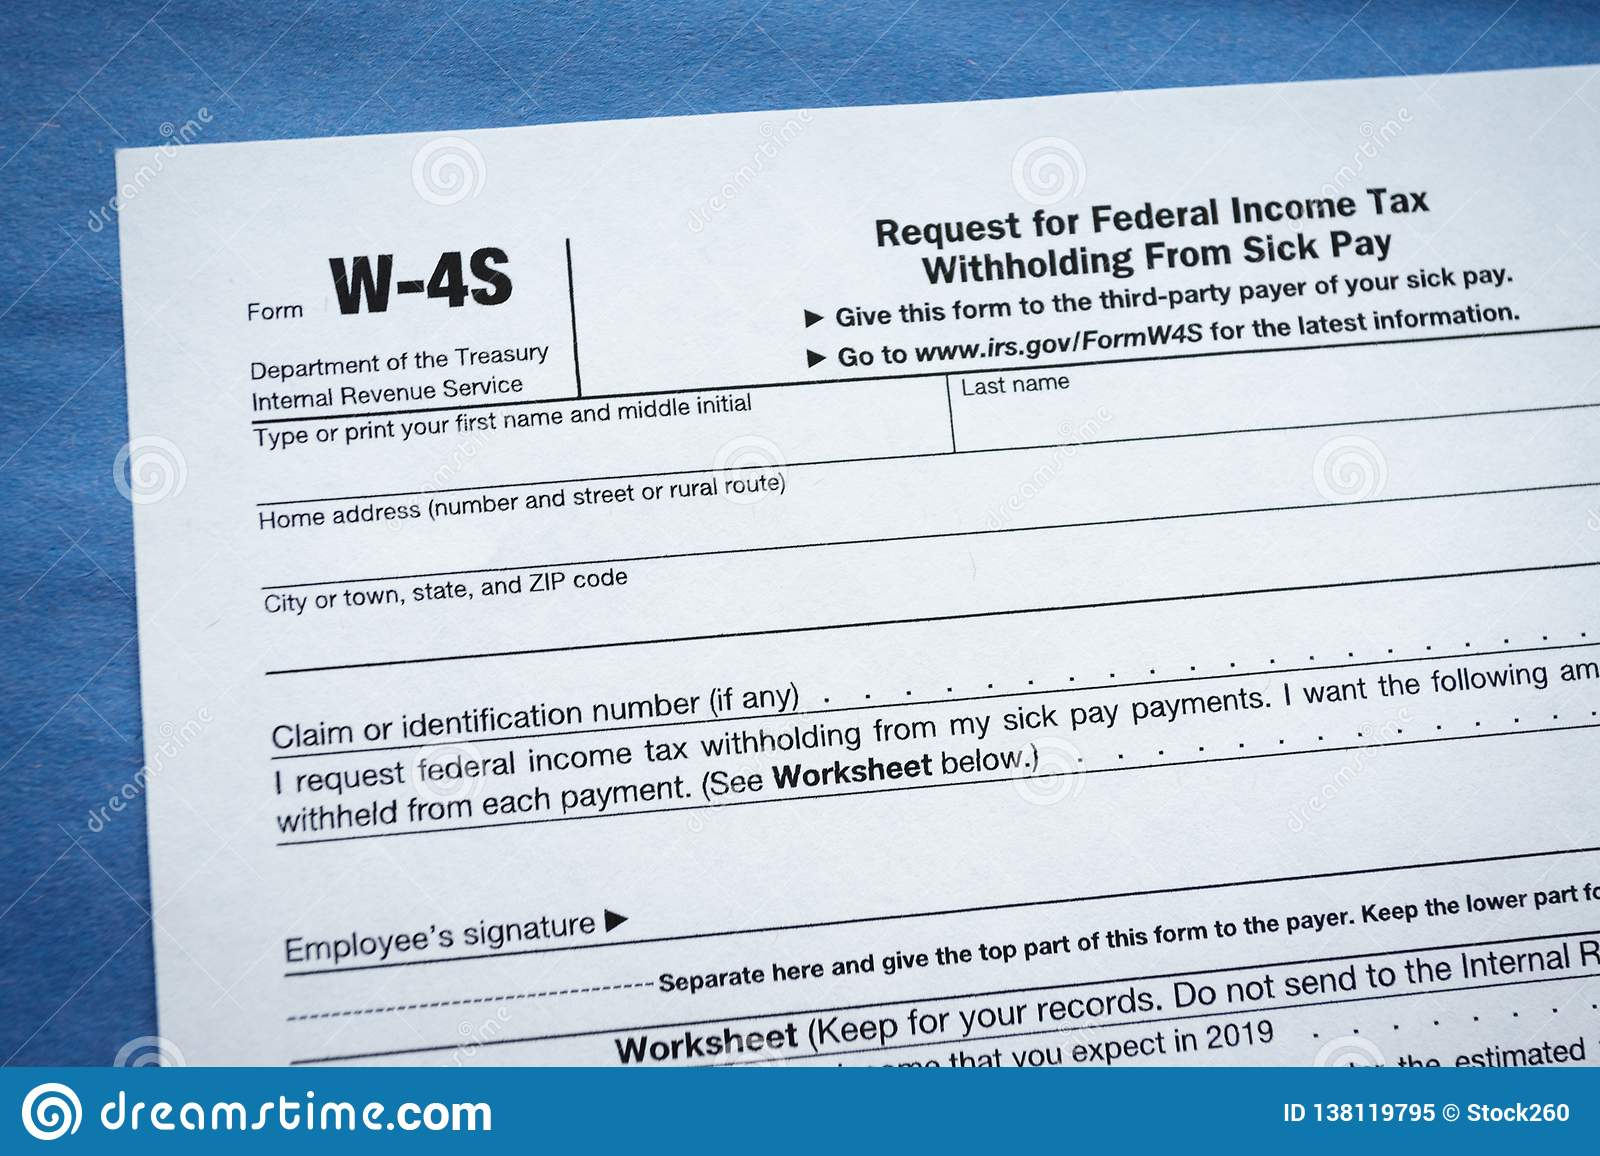 Form W-4S Request for Federal Income Tax Withholding From Sick Pay